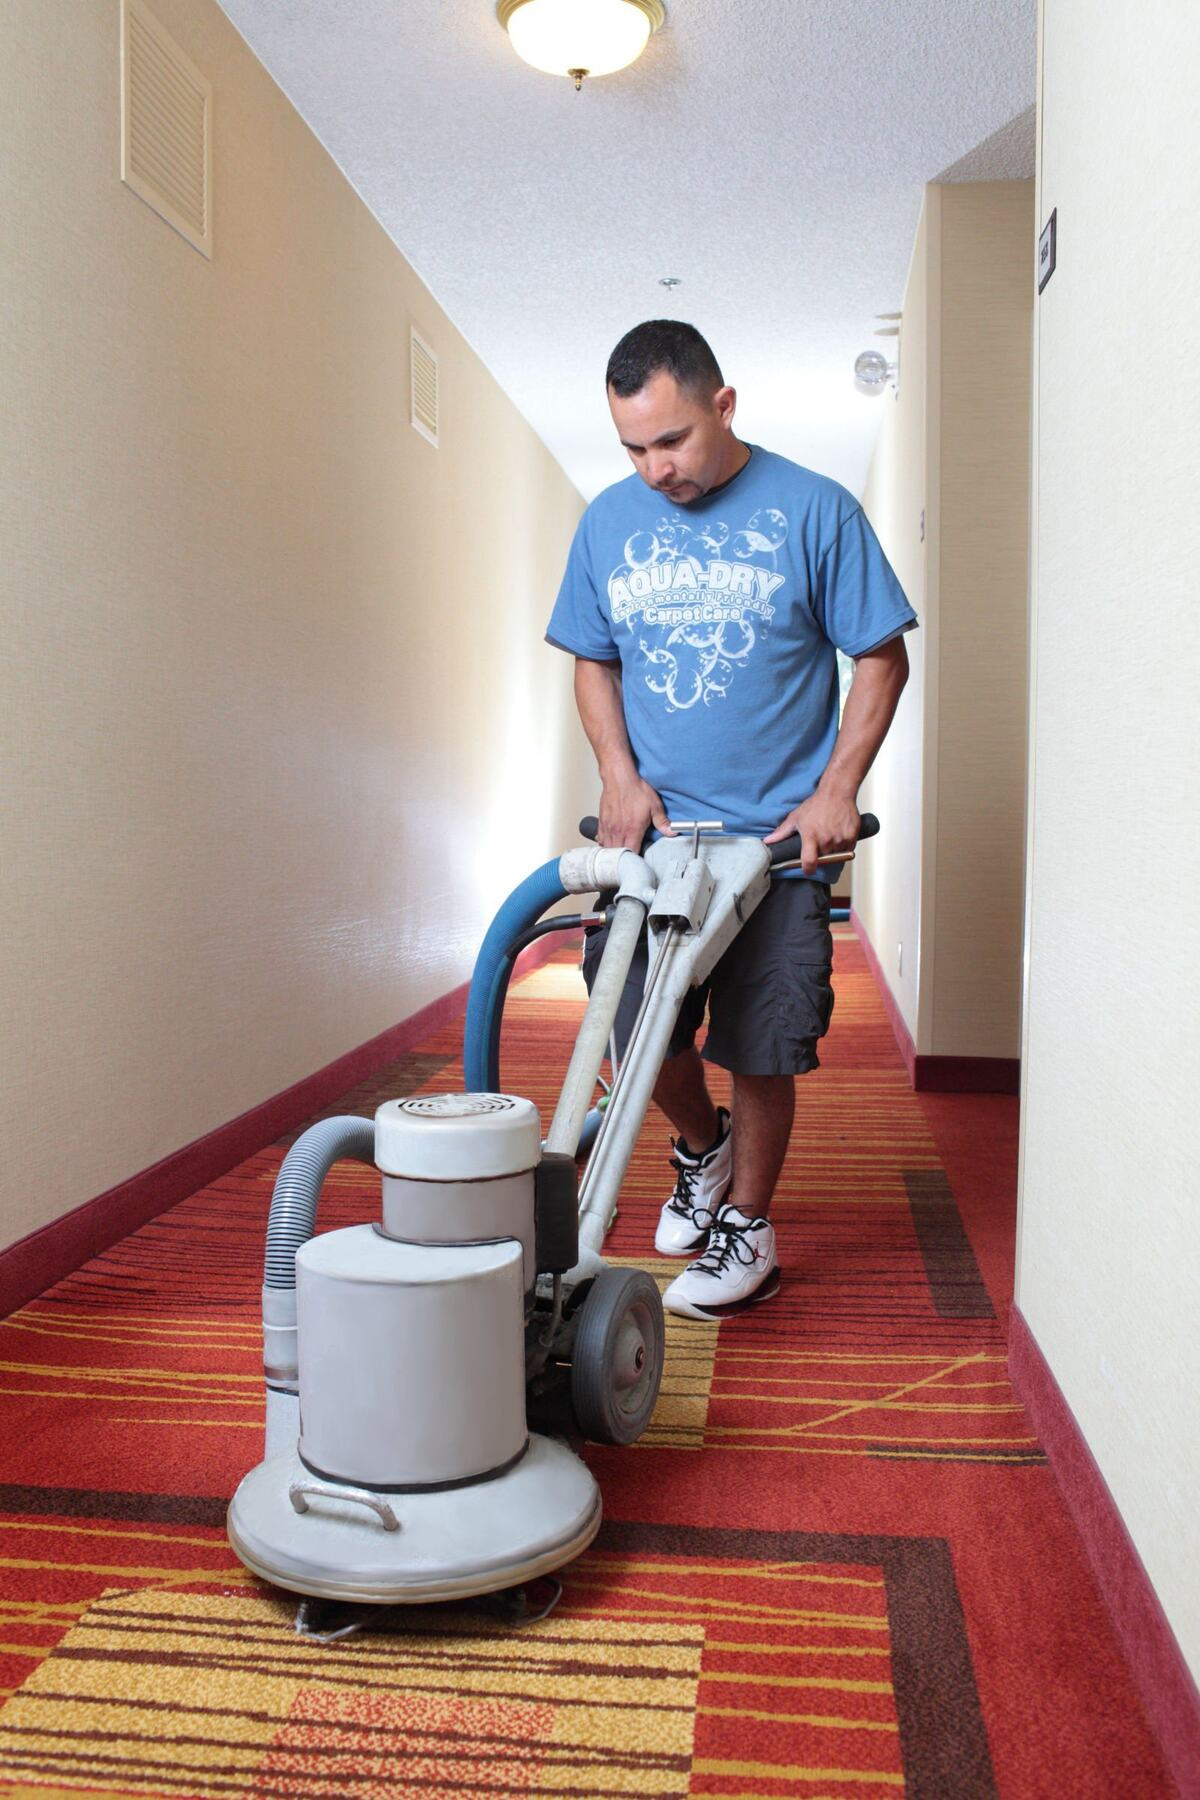 We provide commercial carpet cleaning for hotels, office buildings, etc.